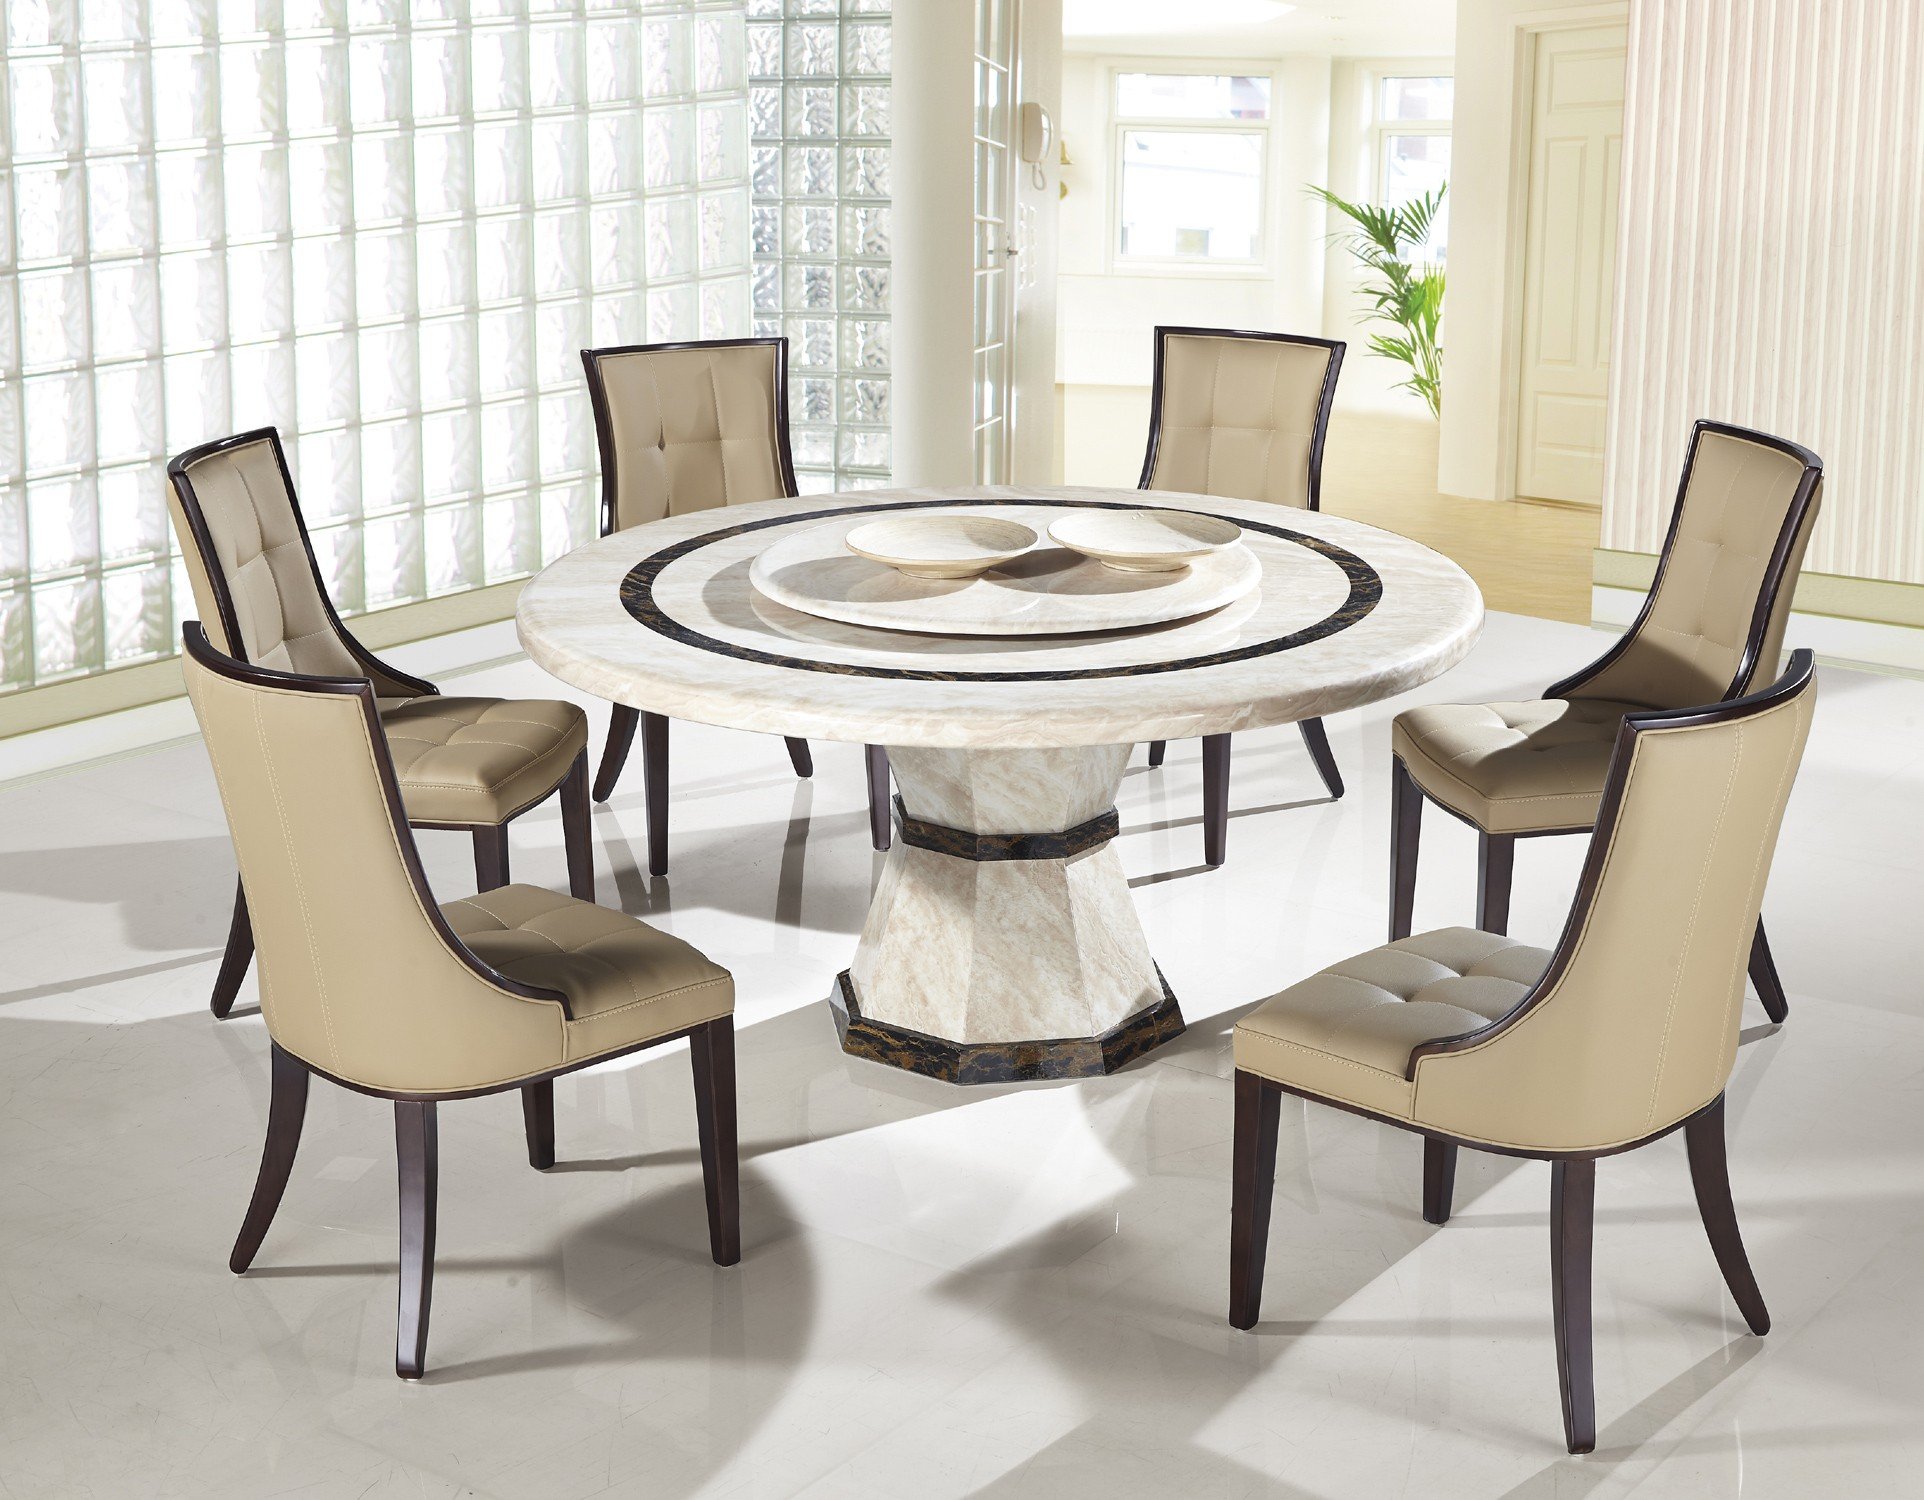 Awesome Modern Round Table And Chairs Light Of Dining Room